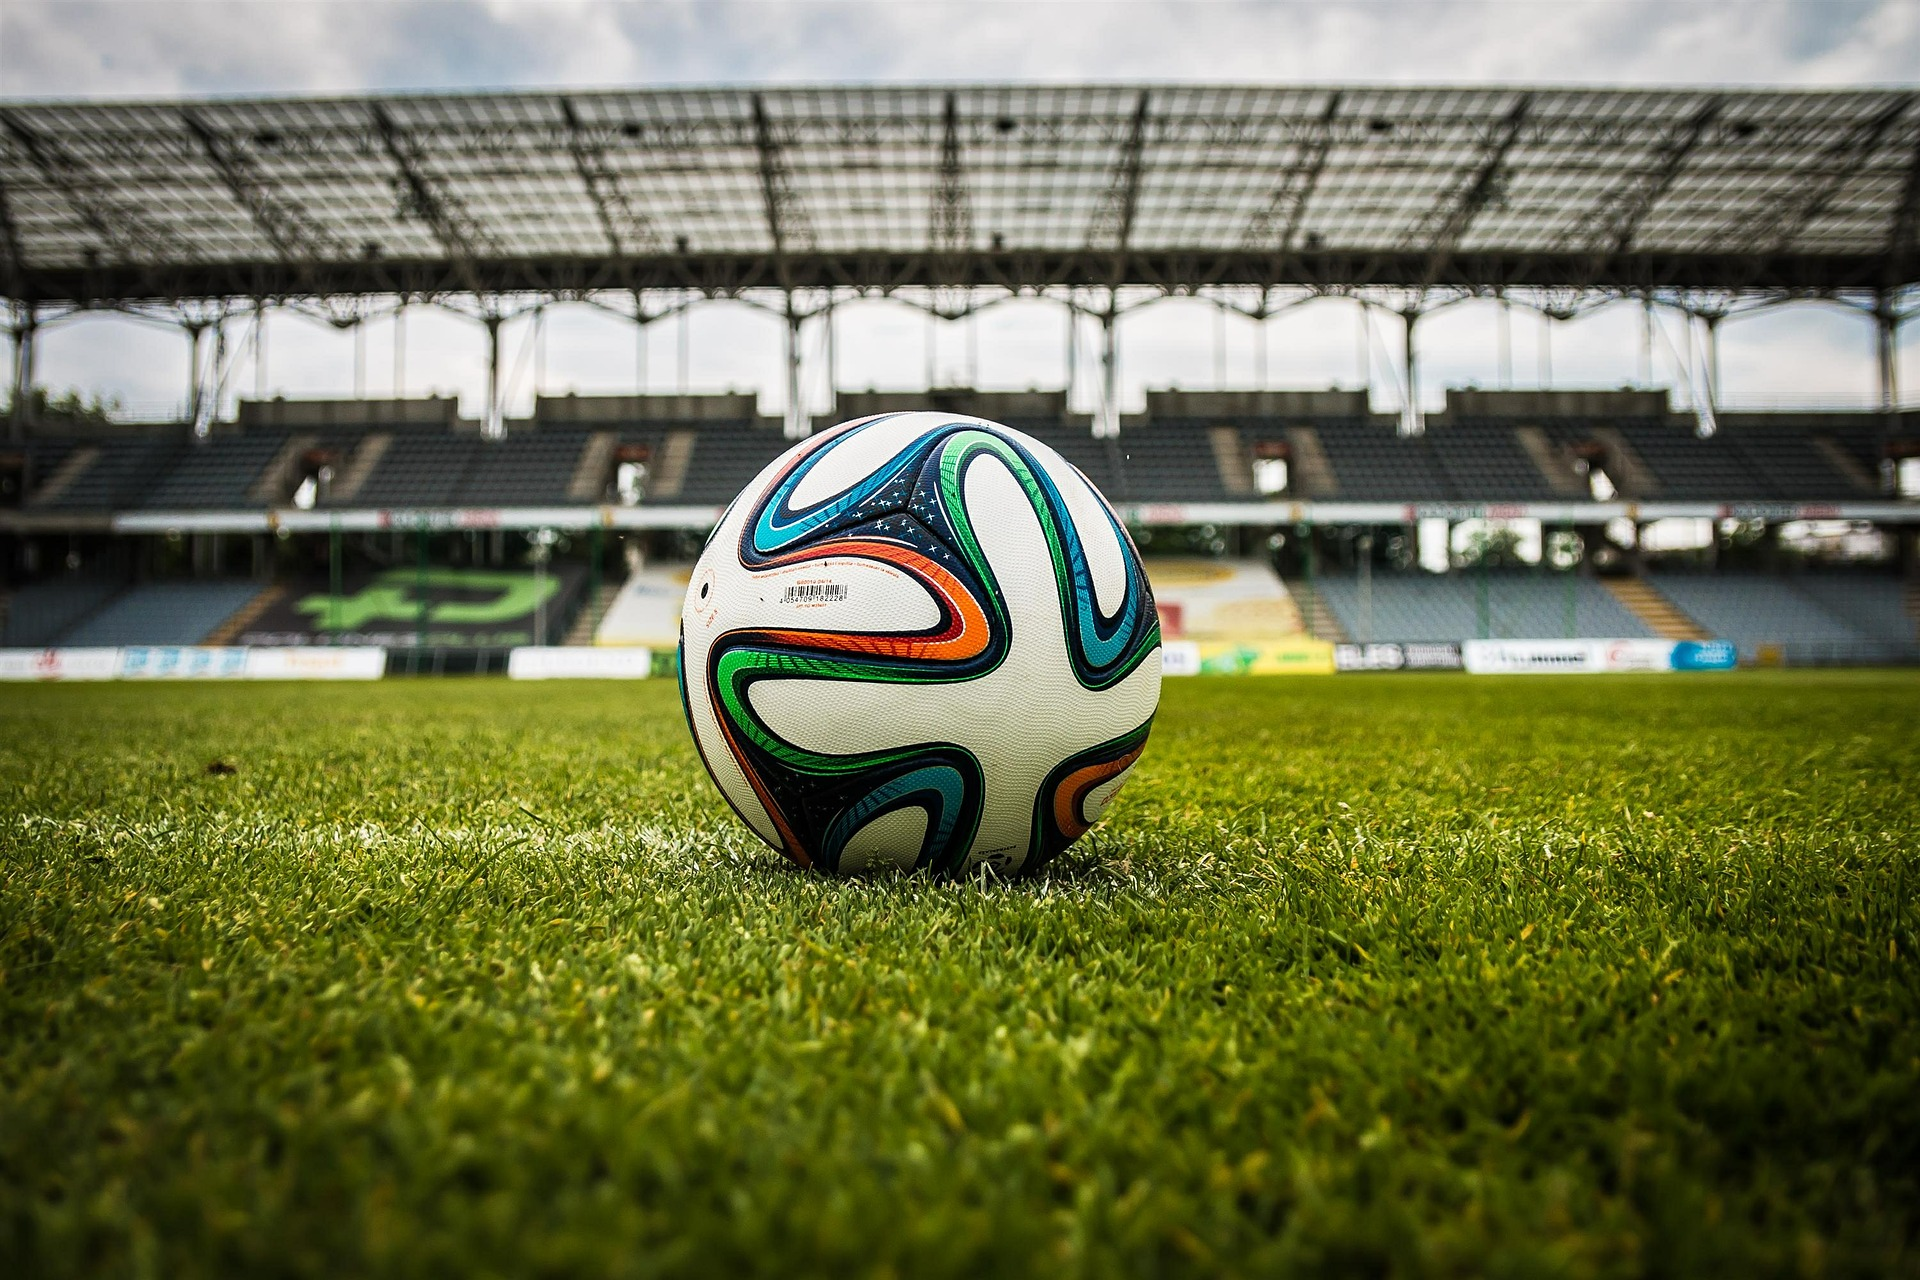 voetbal-the-ball-488700_1920